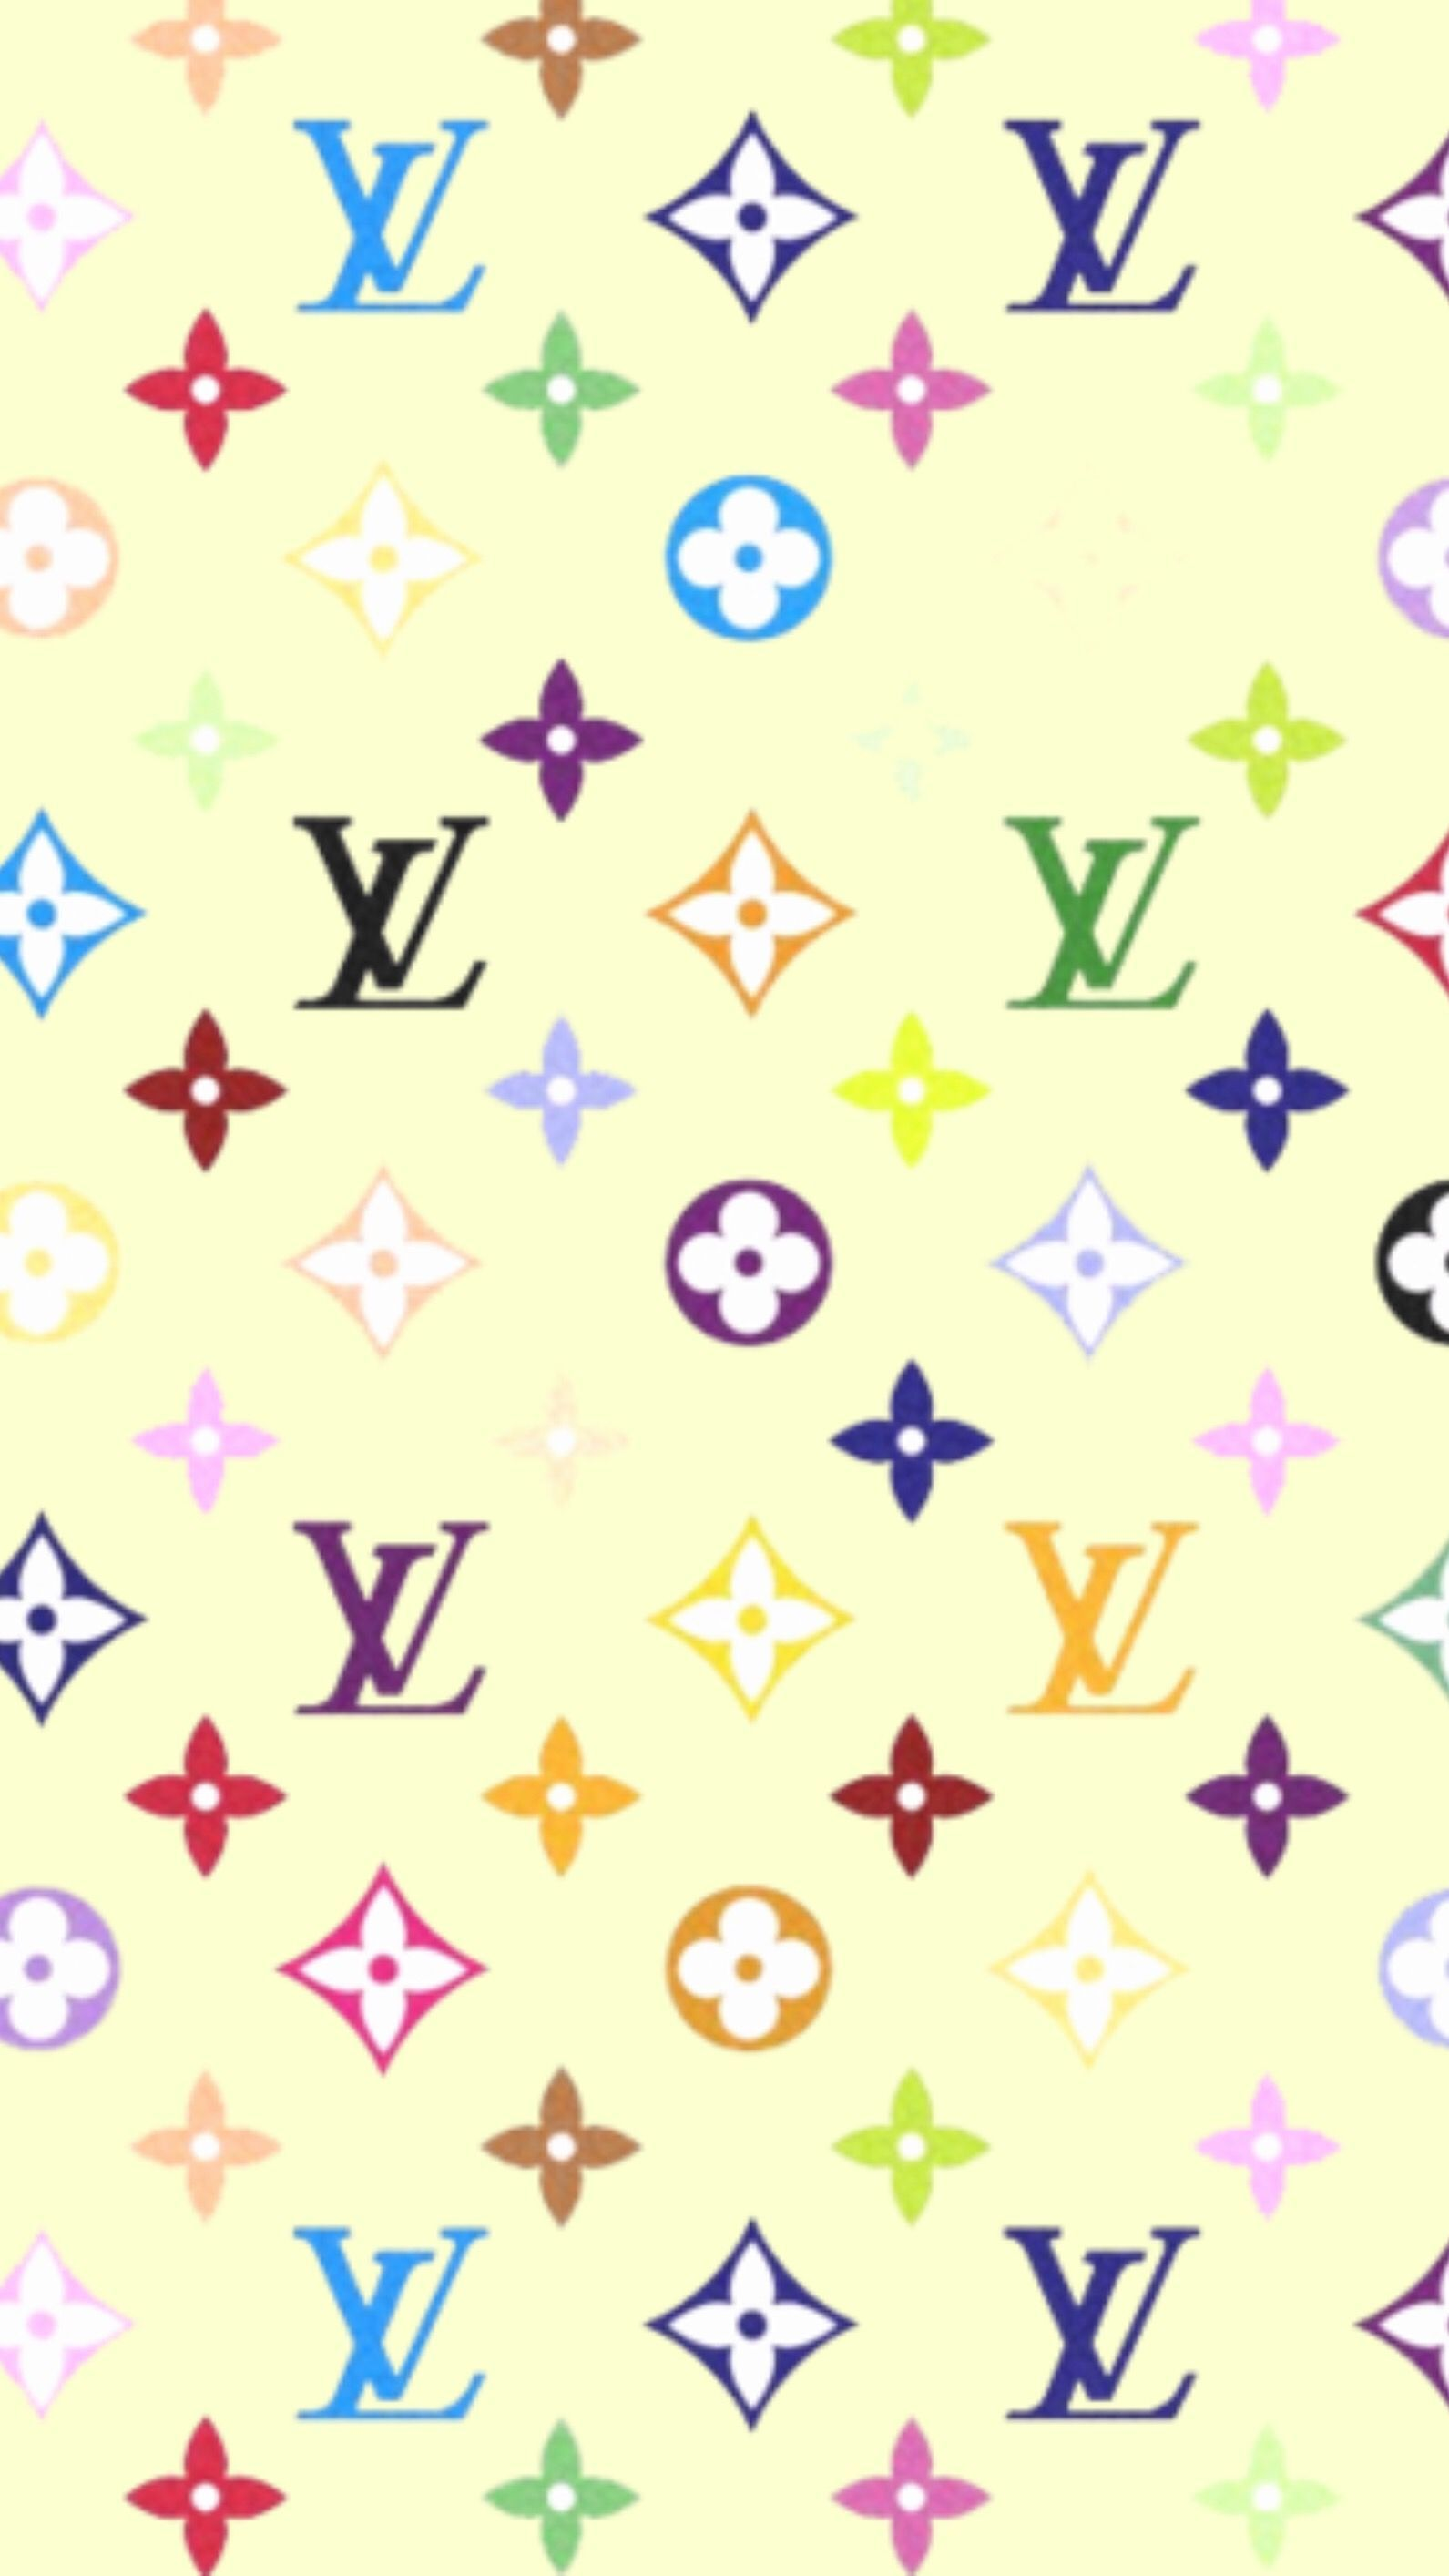 Pin On Lv Louis Vuitton Edgy Wallpaper Wallpaper Iphone Cute Marble Iphone Wallpaper